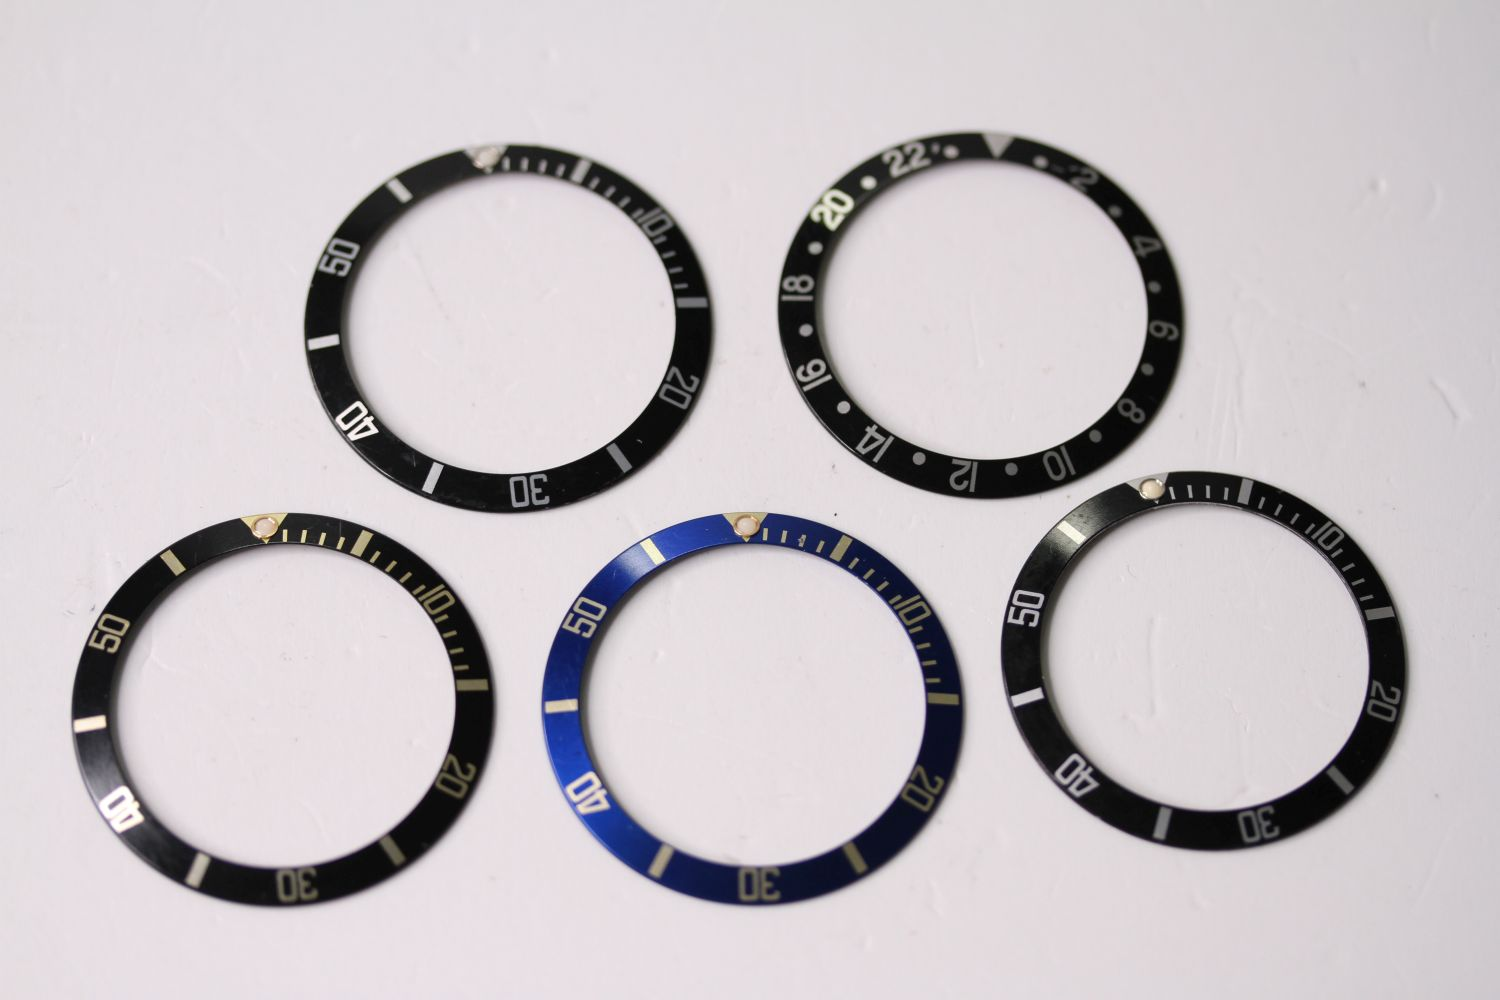 5x 1980s-1990s Rolex bezel inserts including, GMT, Submariner and Blue and Black Bi-Colour